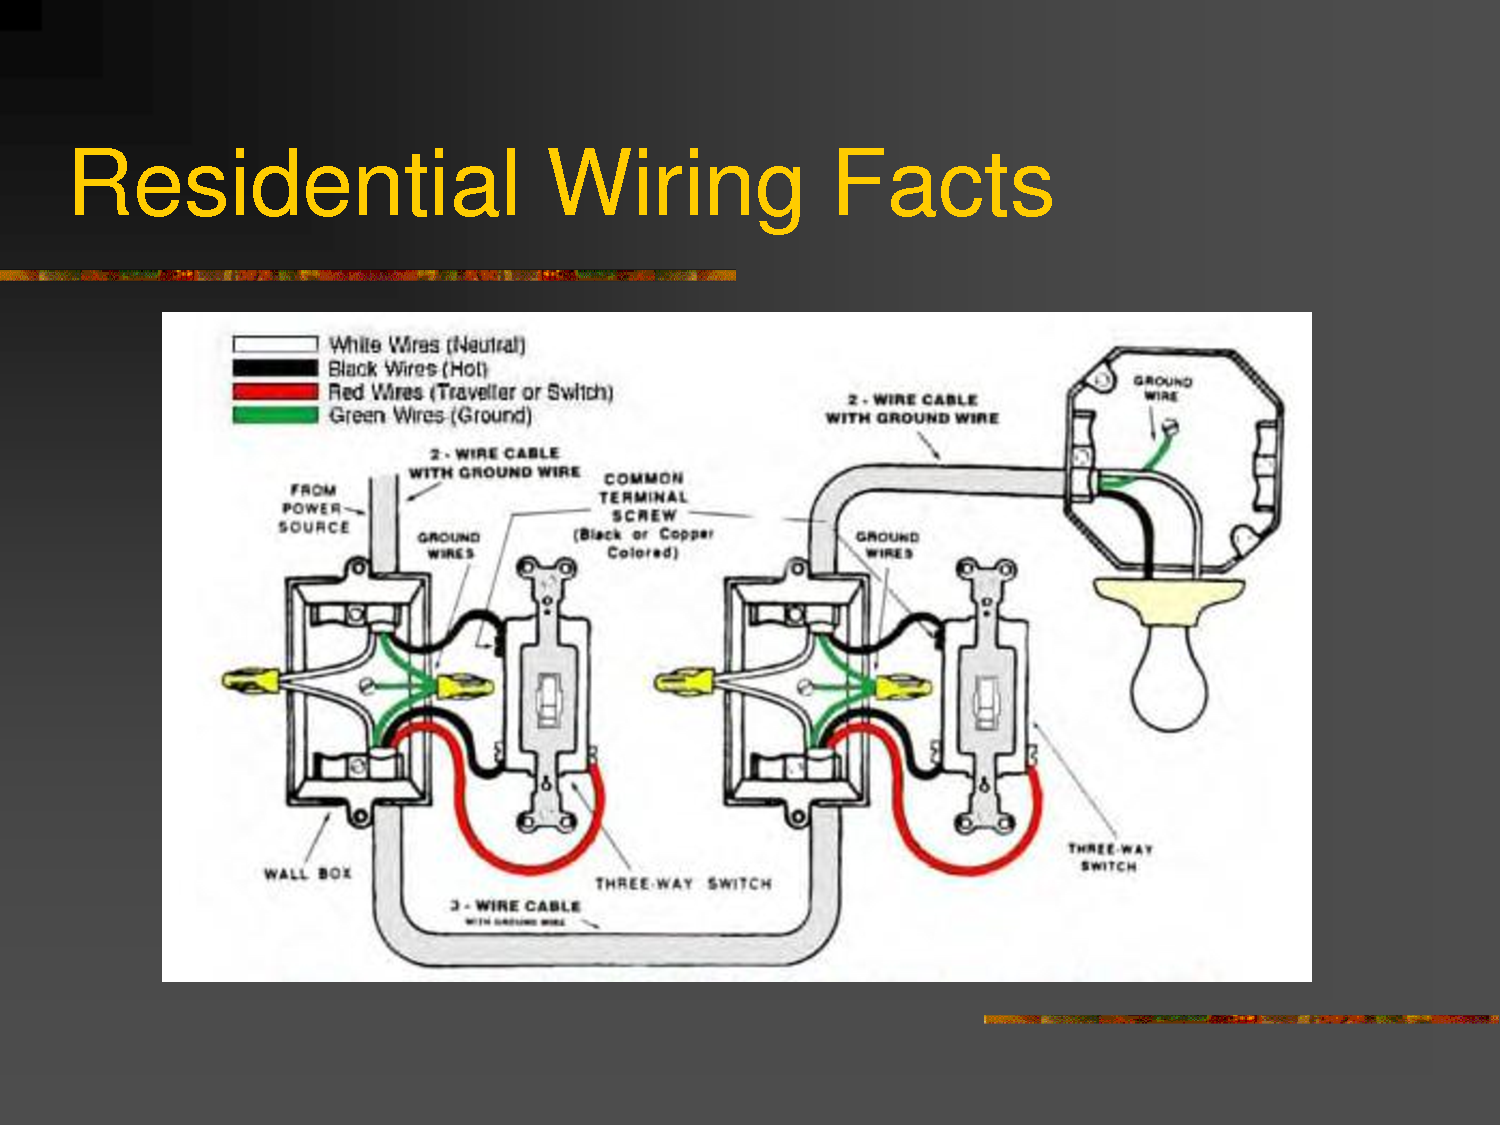 85f6d7068dddf27aa5737fc68962f04e 4 best images of residential wiring diagrams house electrical house wire diagram at webbmarketing.co